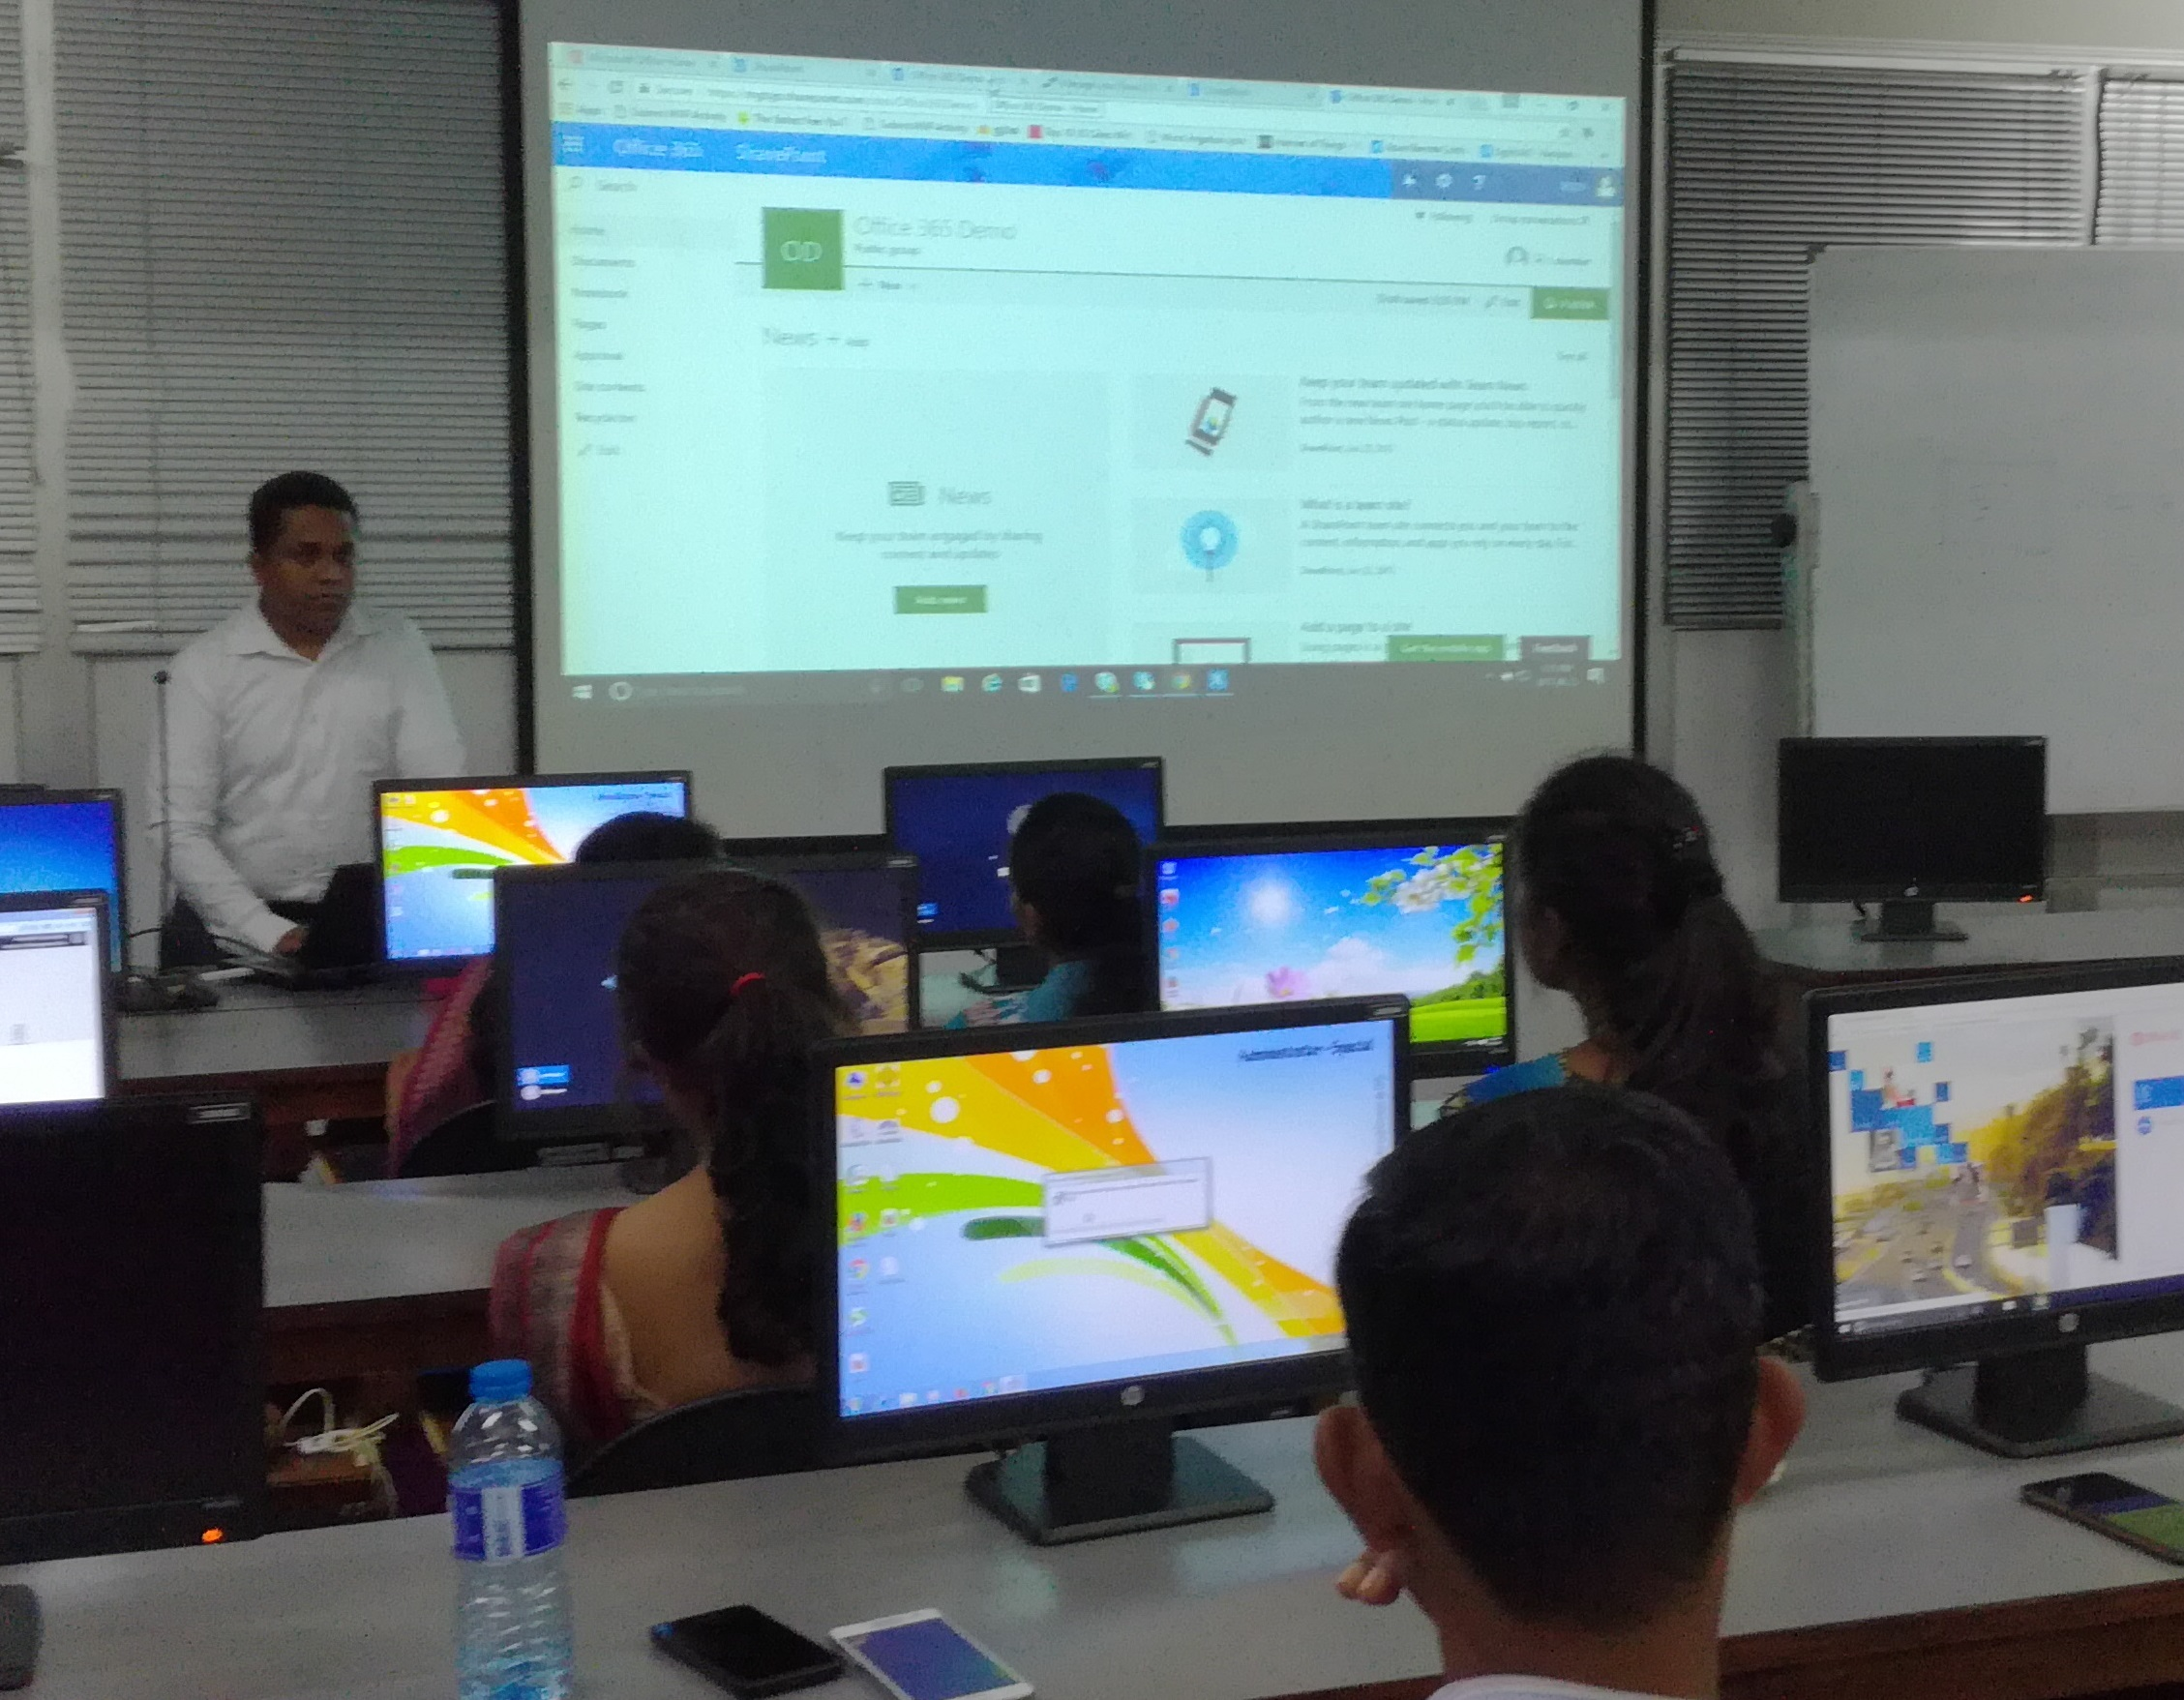 Workshop for Microsoft Office 365